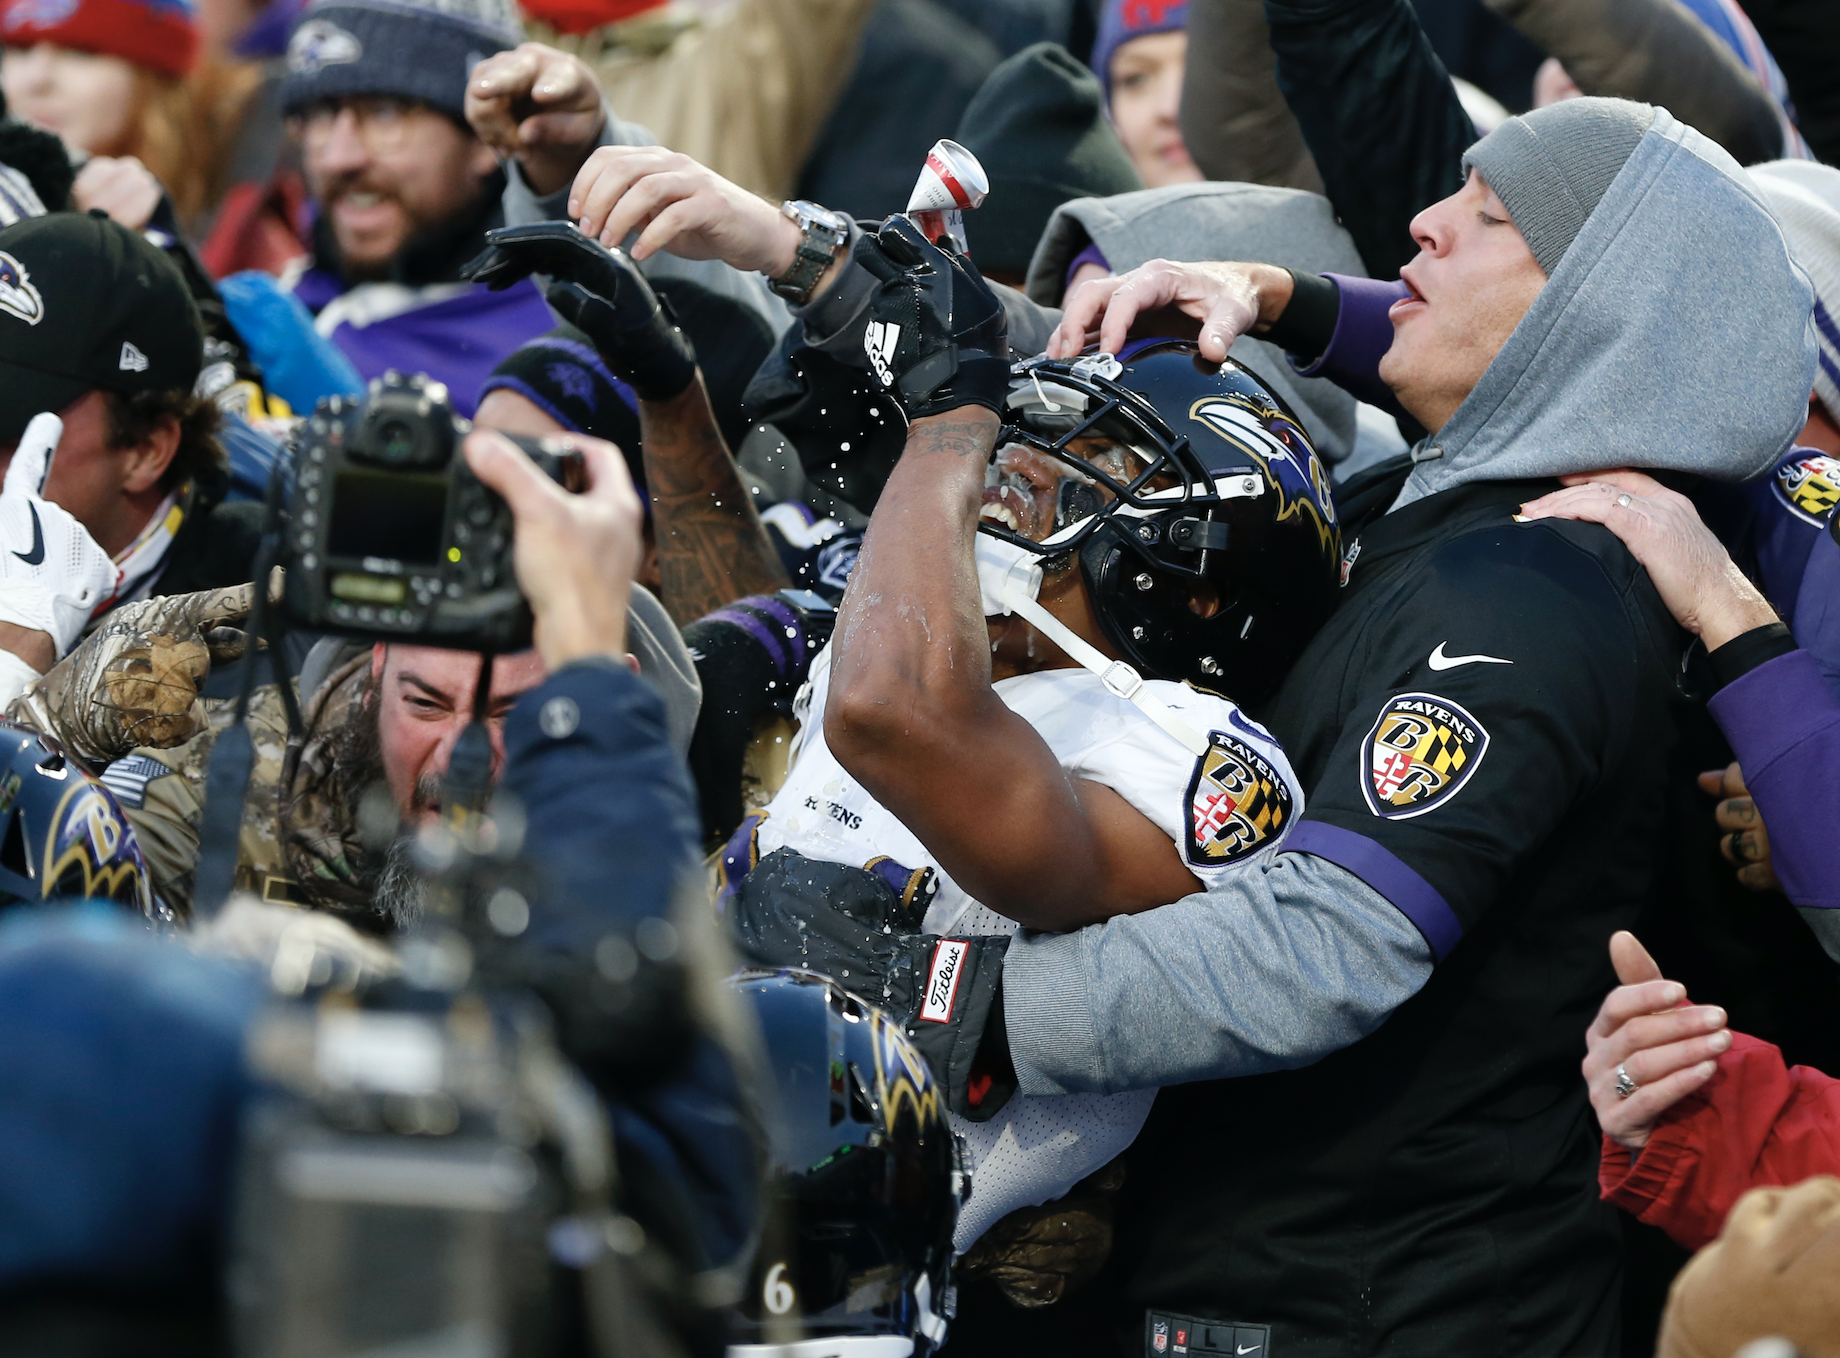 Marcus Peters #24 of the Baltimore Ravens jumps in the crowd to celebrate breaking up a pass during the fourth quarter against the Buffalo Bills at New Era Field on December 8, 2019 in Orchard Park, New York. (Photo: Timothy T Ludwig/Getty Images)